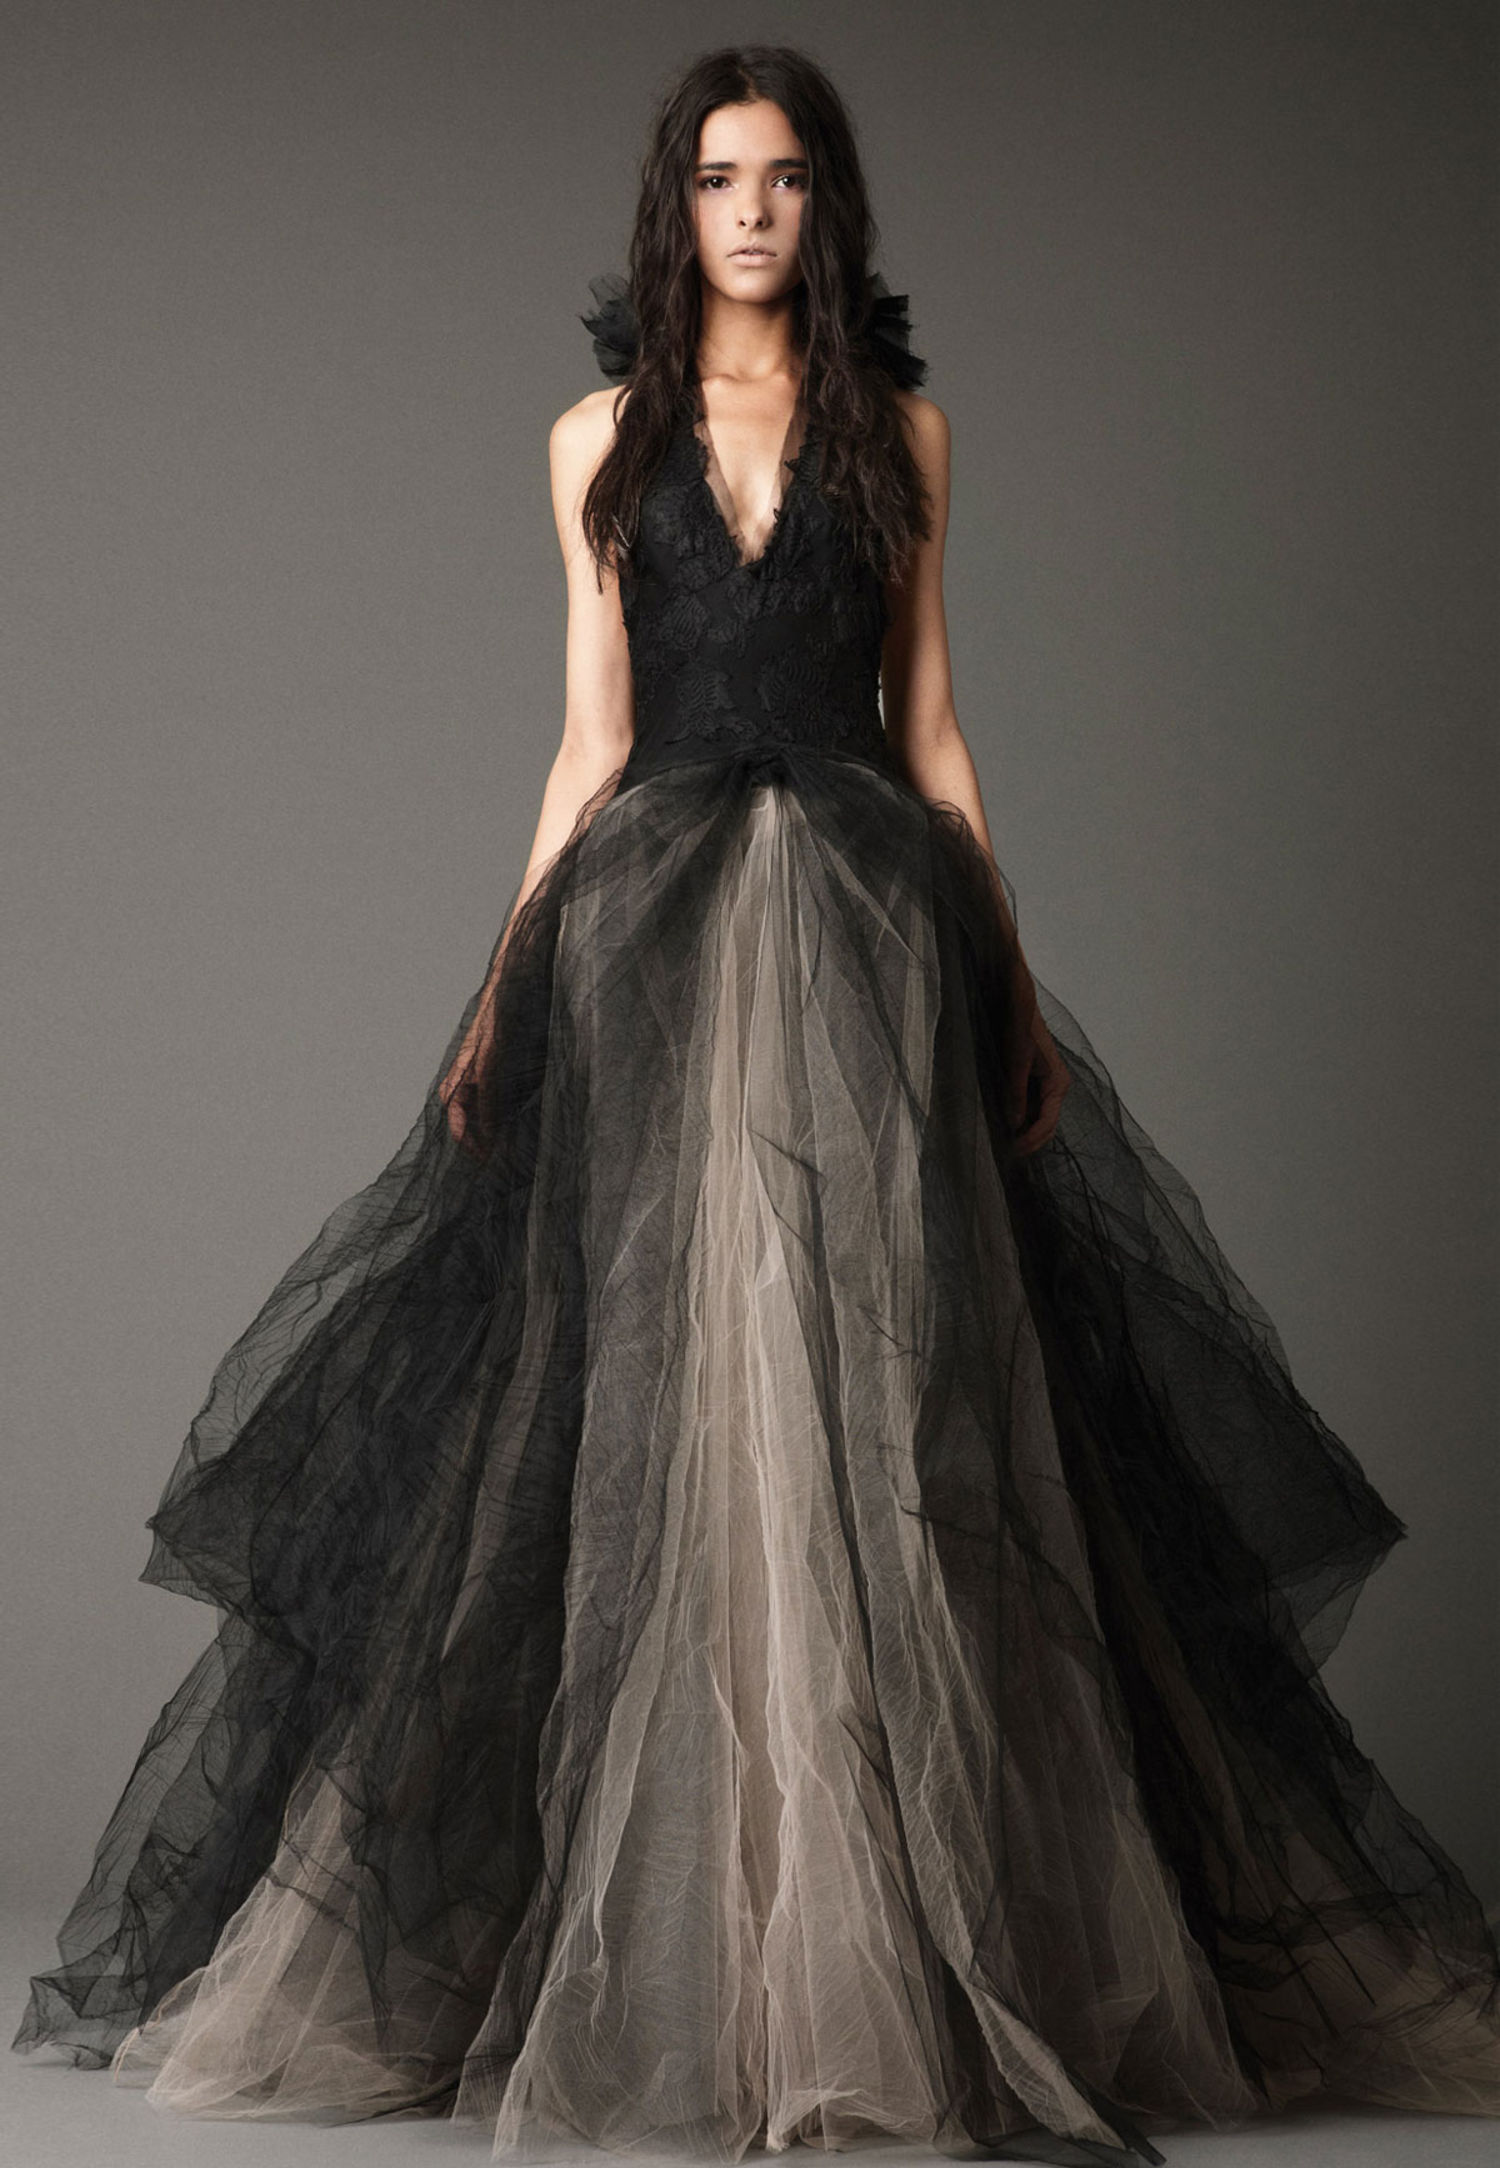 Black Wedding Dresses | Dressed Up Girl